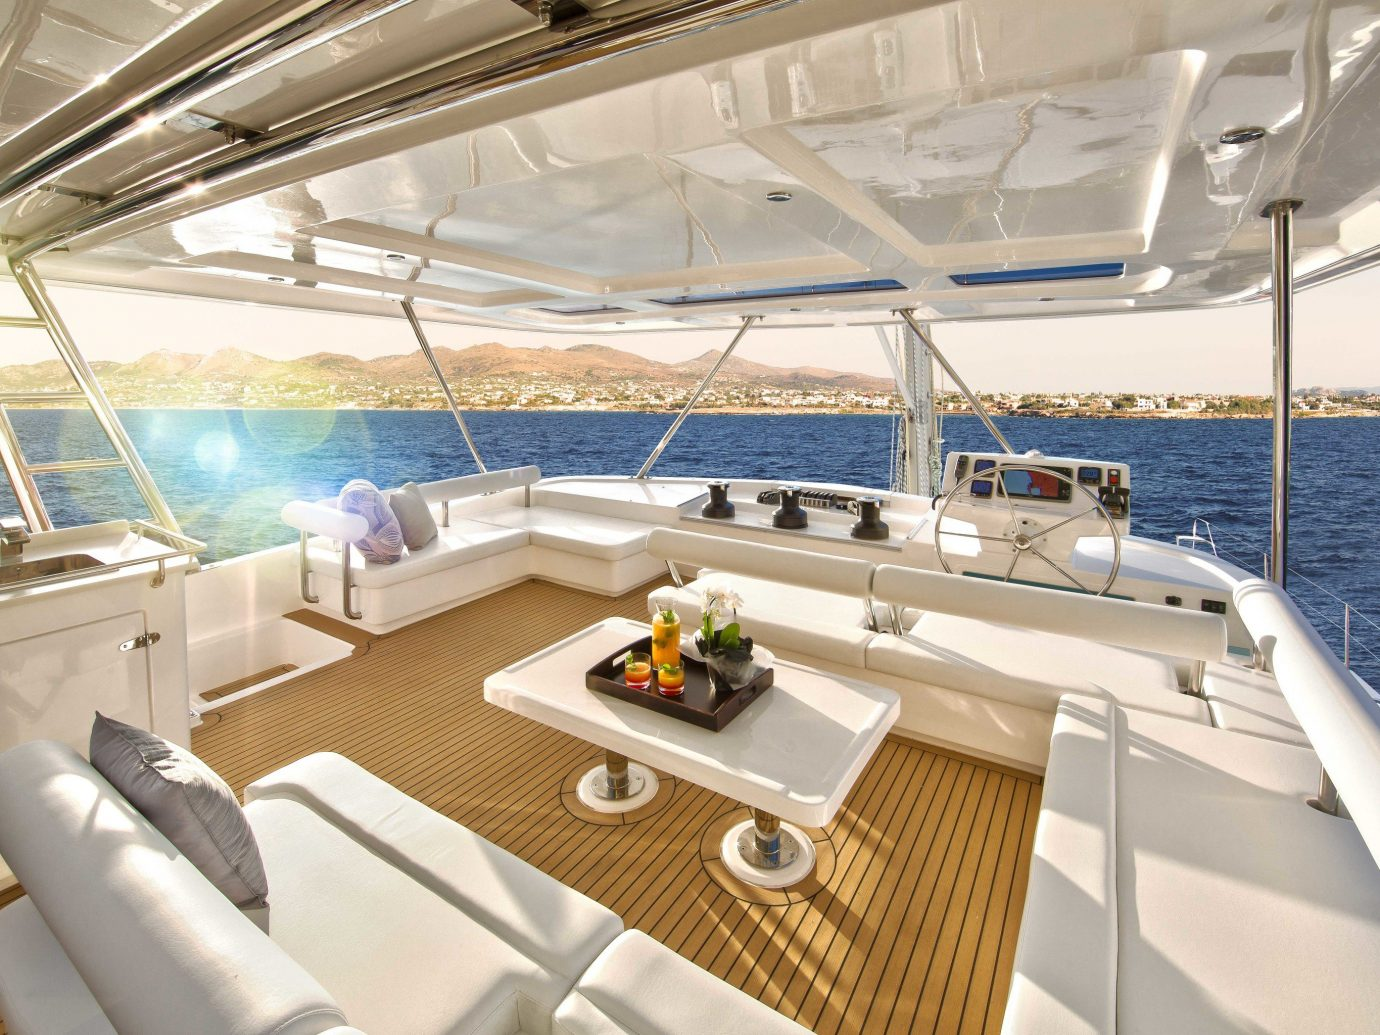 Trip Ideas Boat indoor vehicle watercraft yacht Deck ship luxury yacht